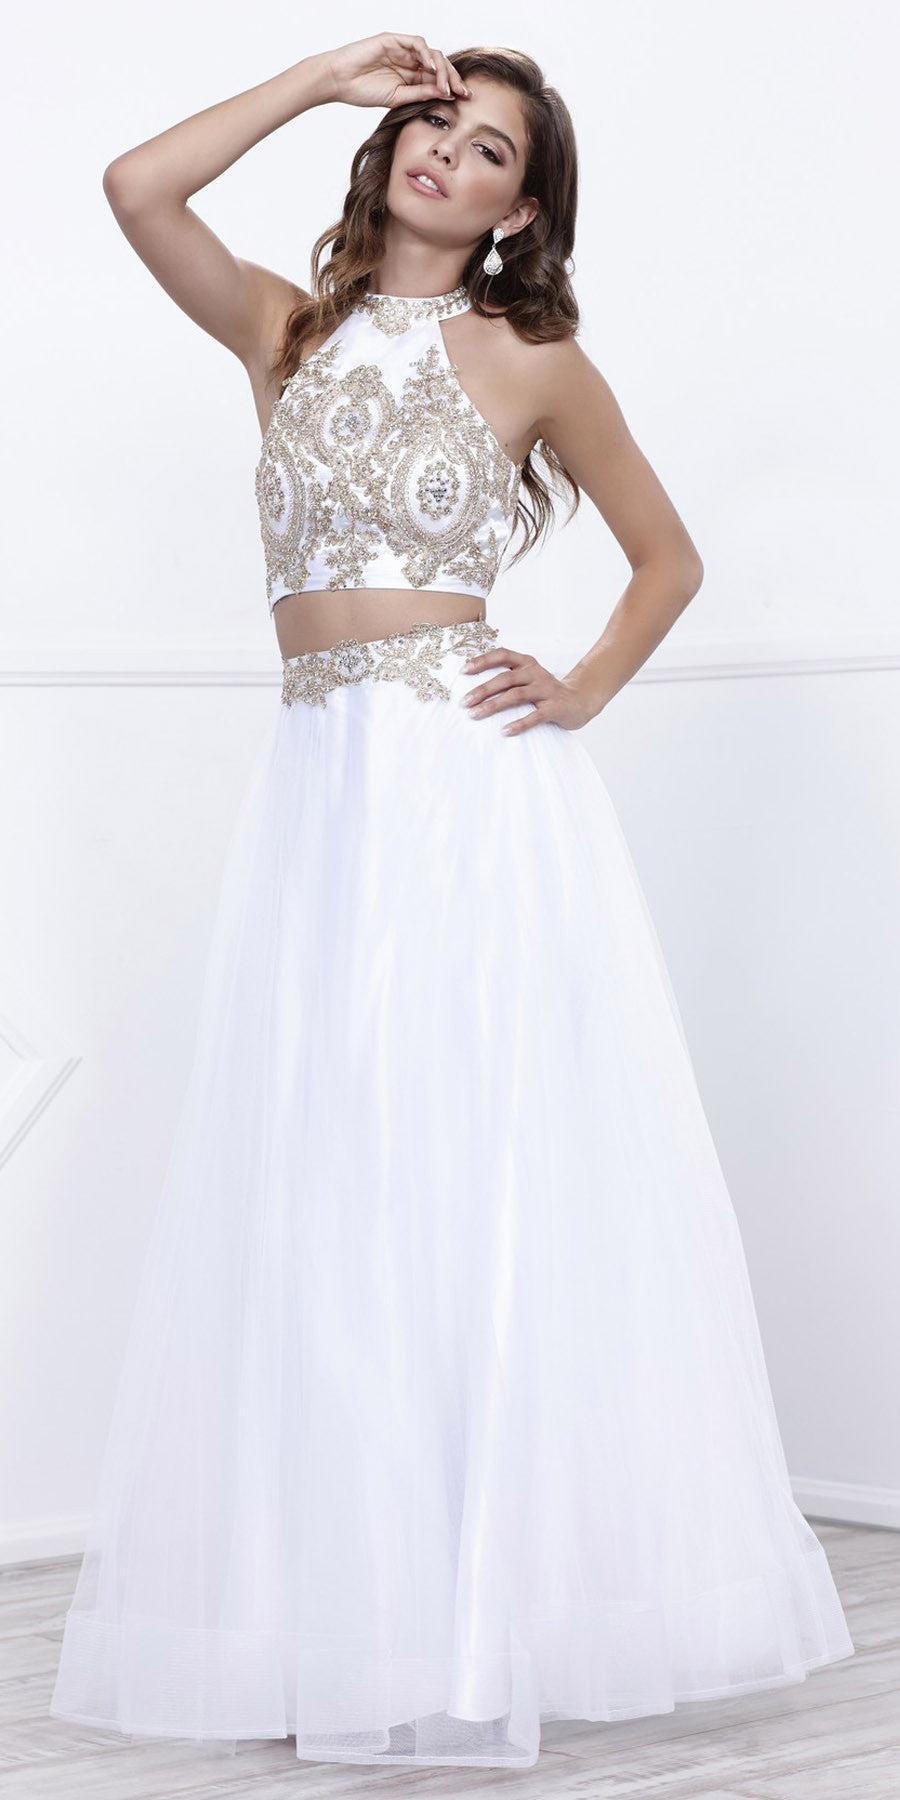 dress - Gold and white prom dress video